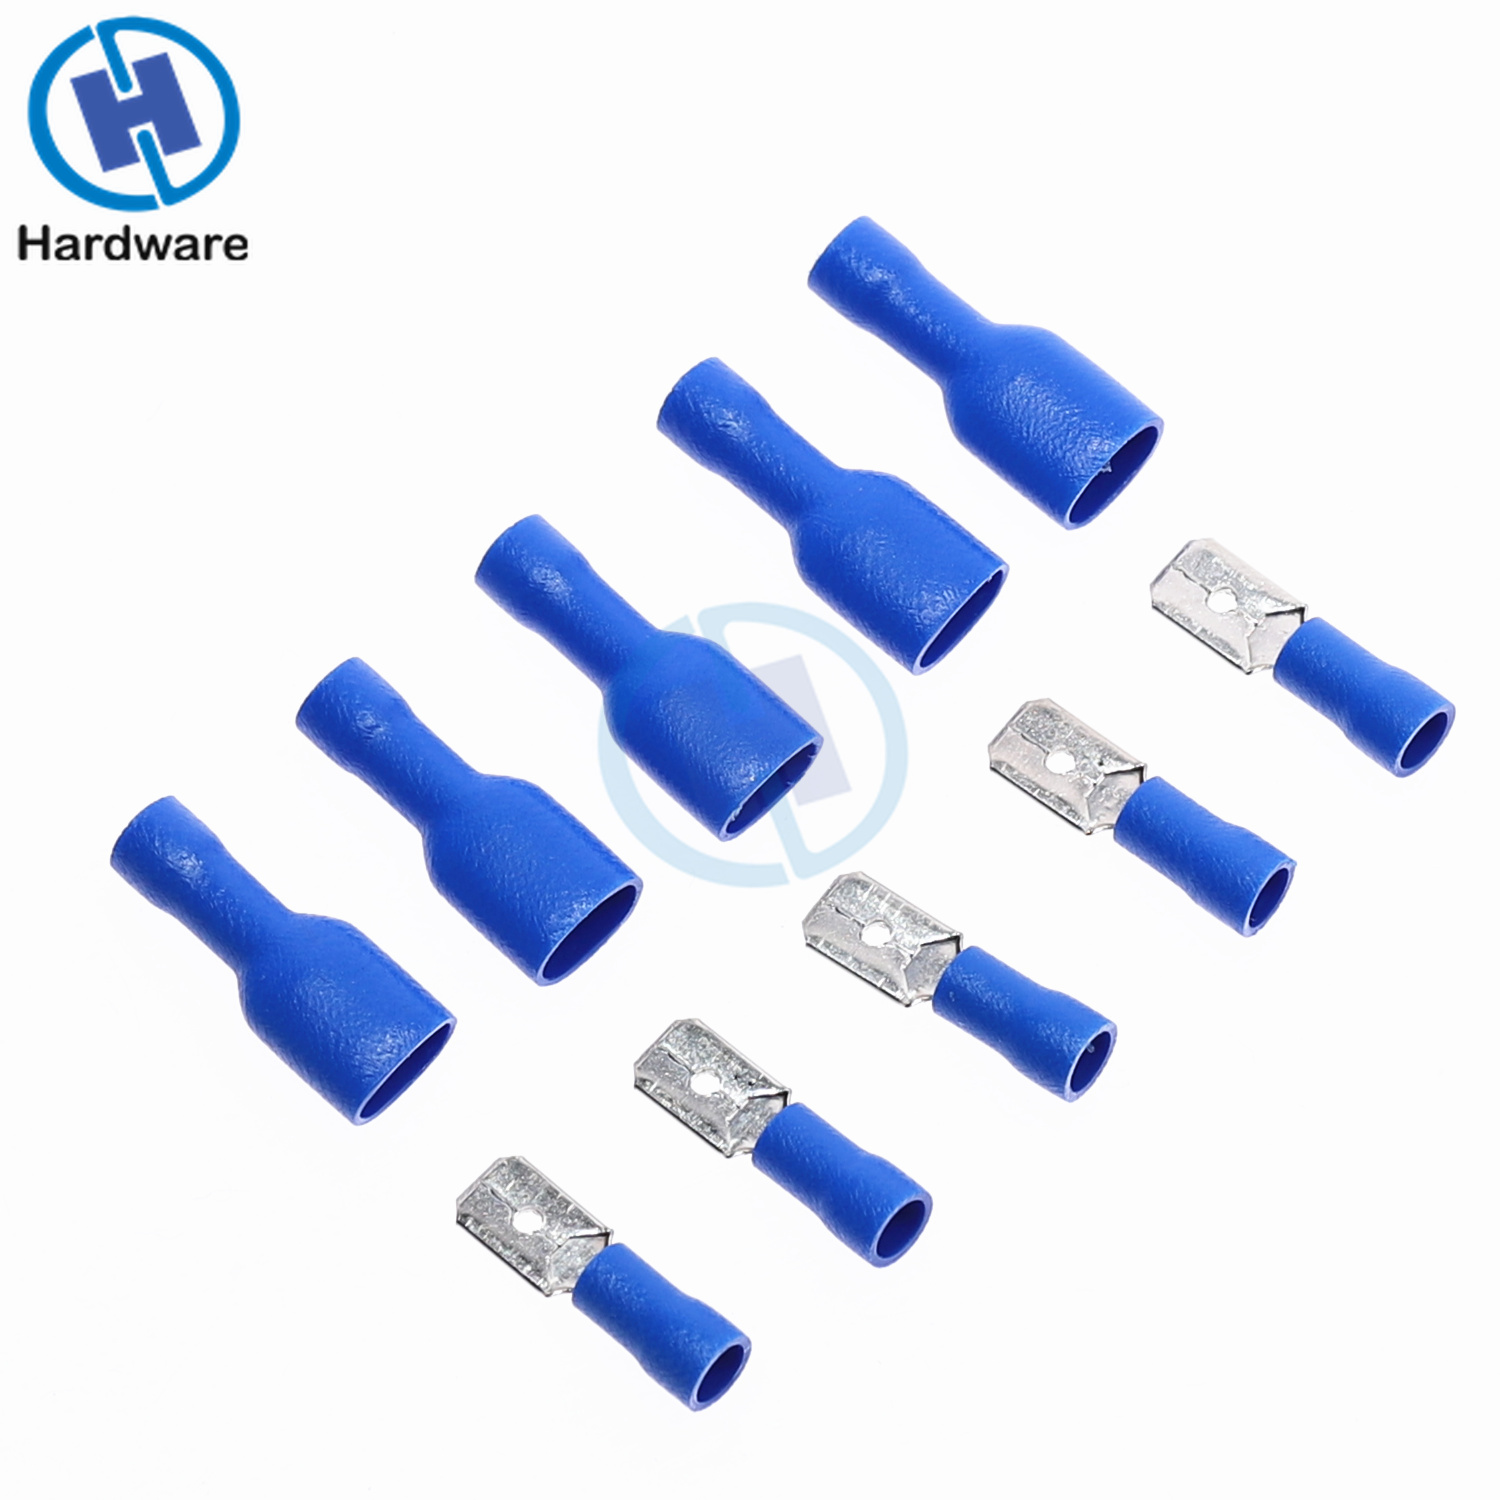 14 PC Male /& Female Wire Terminals Connector